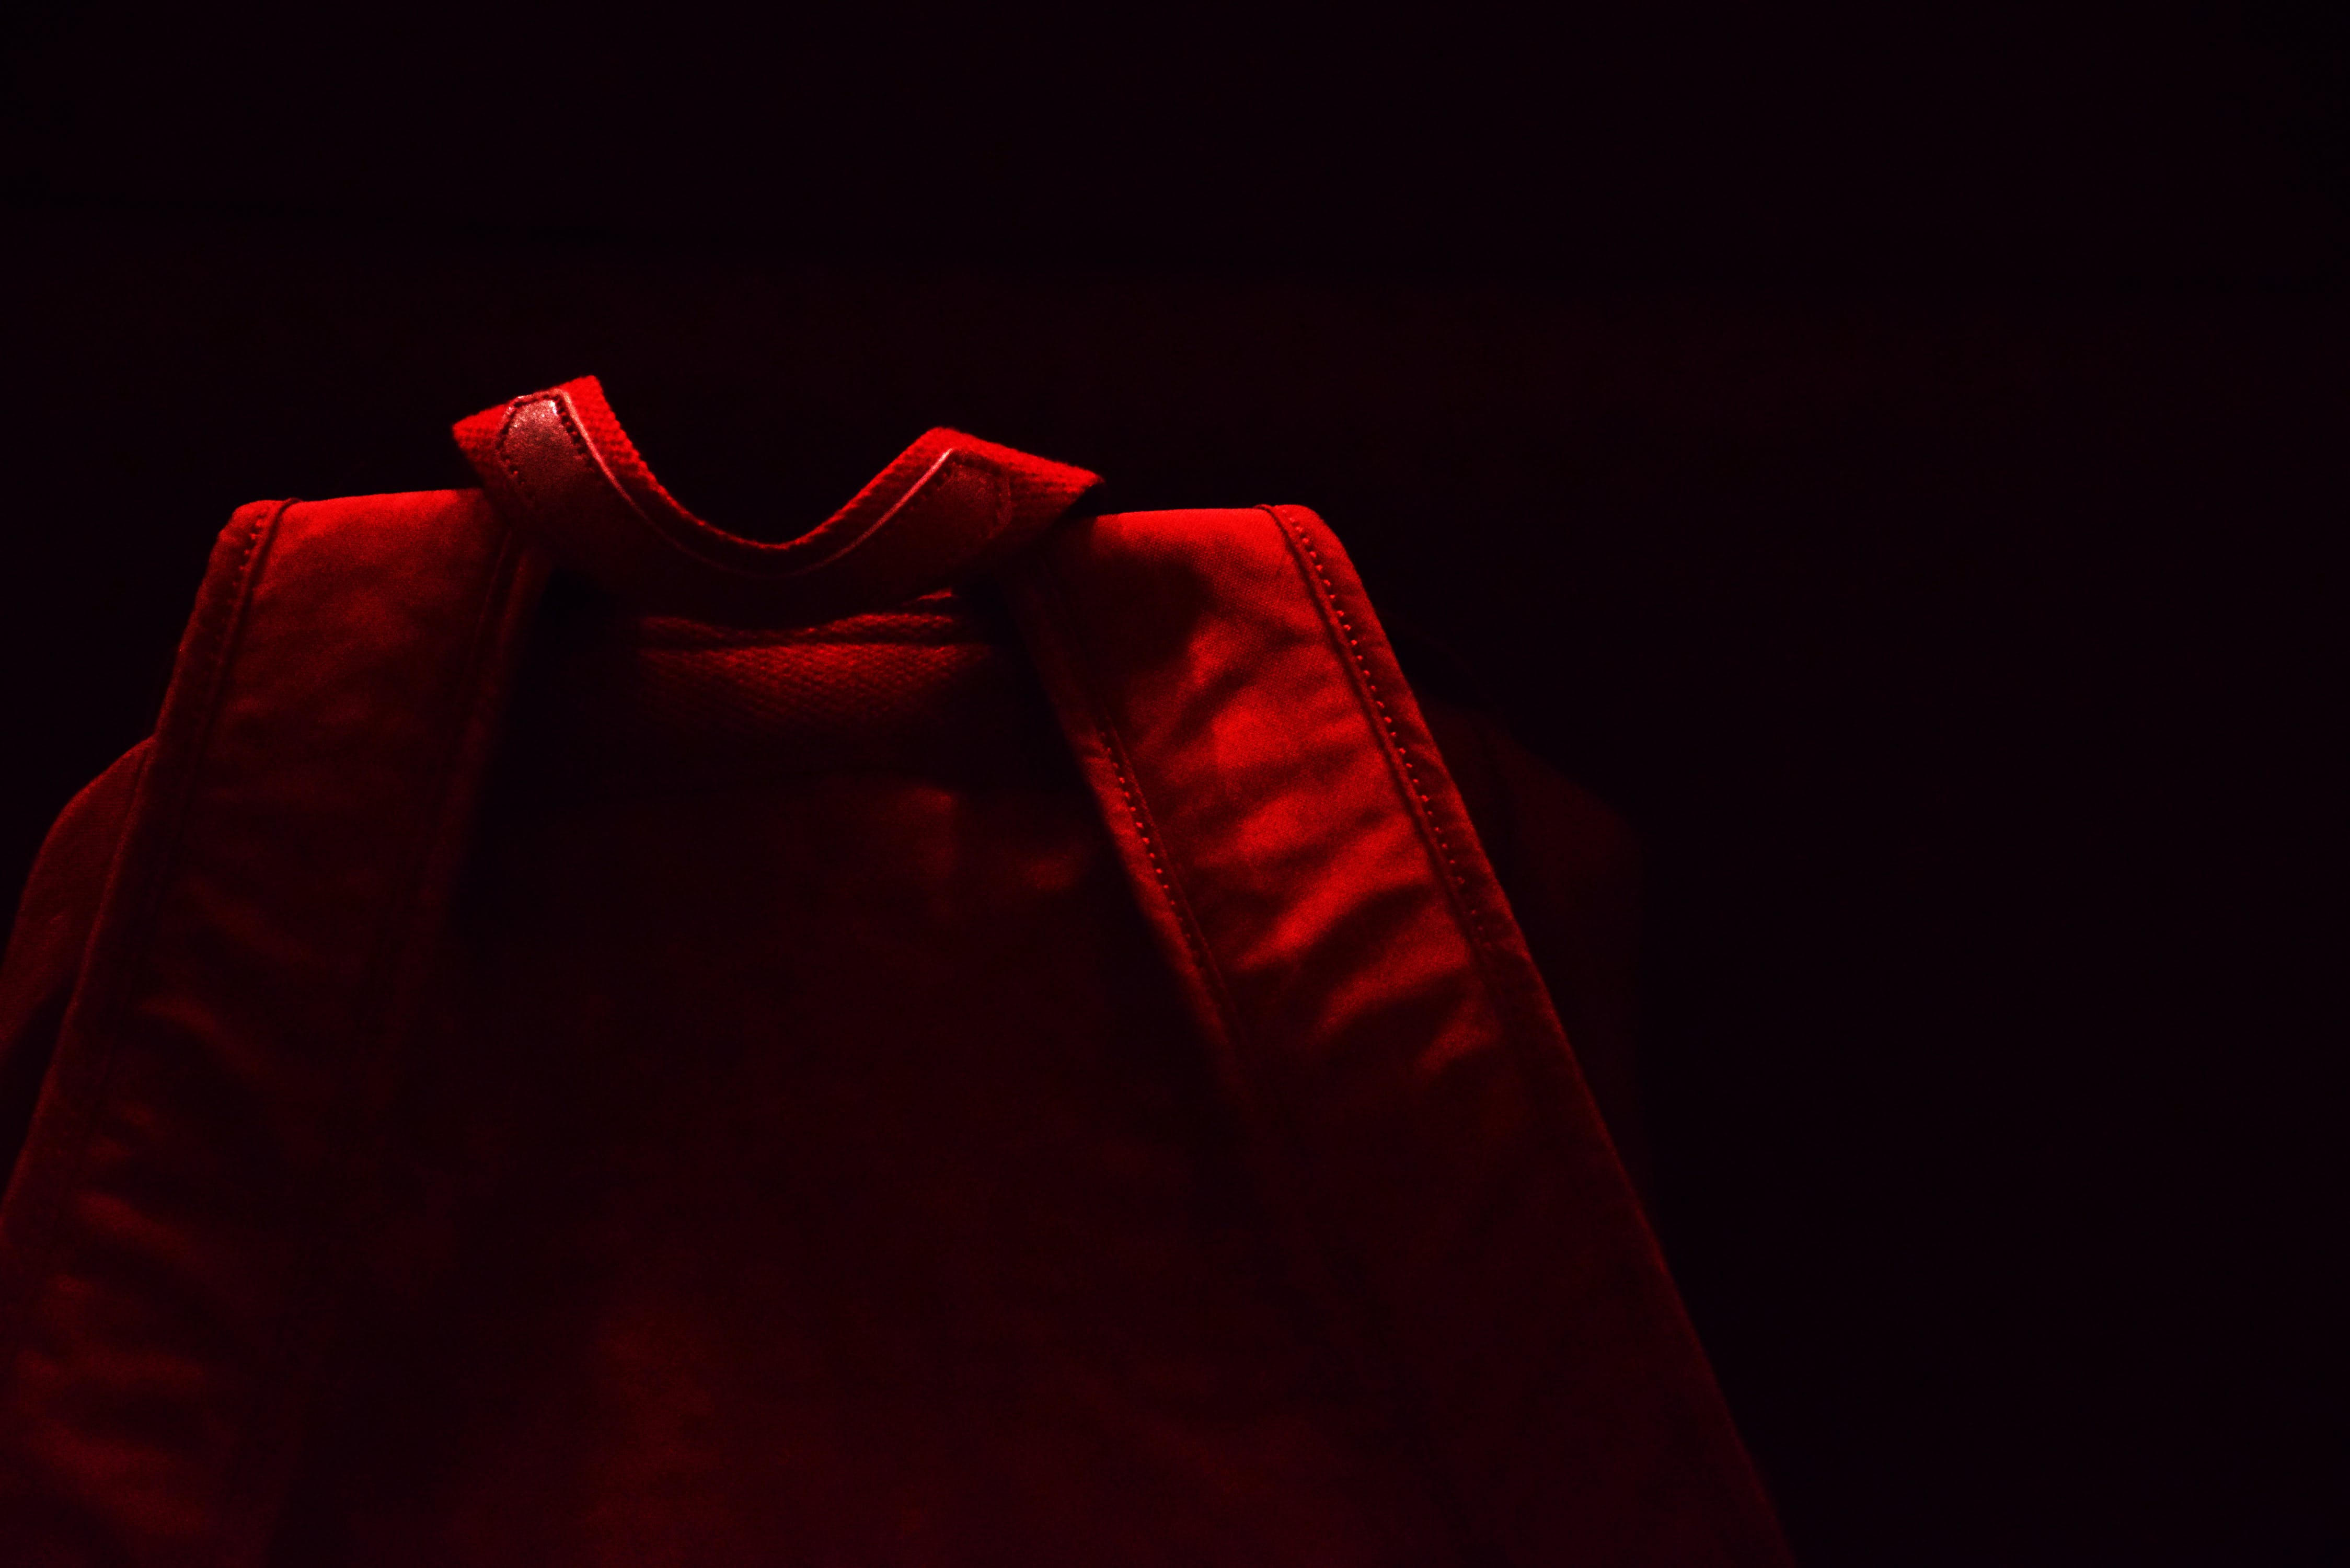 Free stock photo of backpack, bag, cloth, red